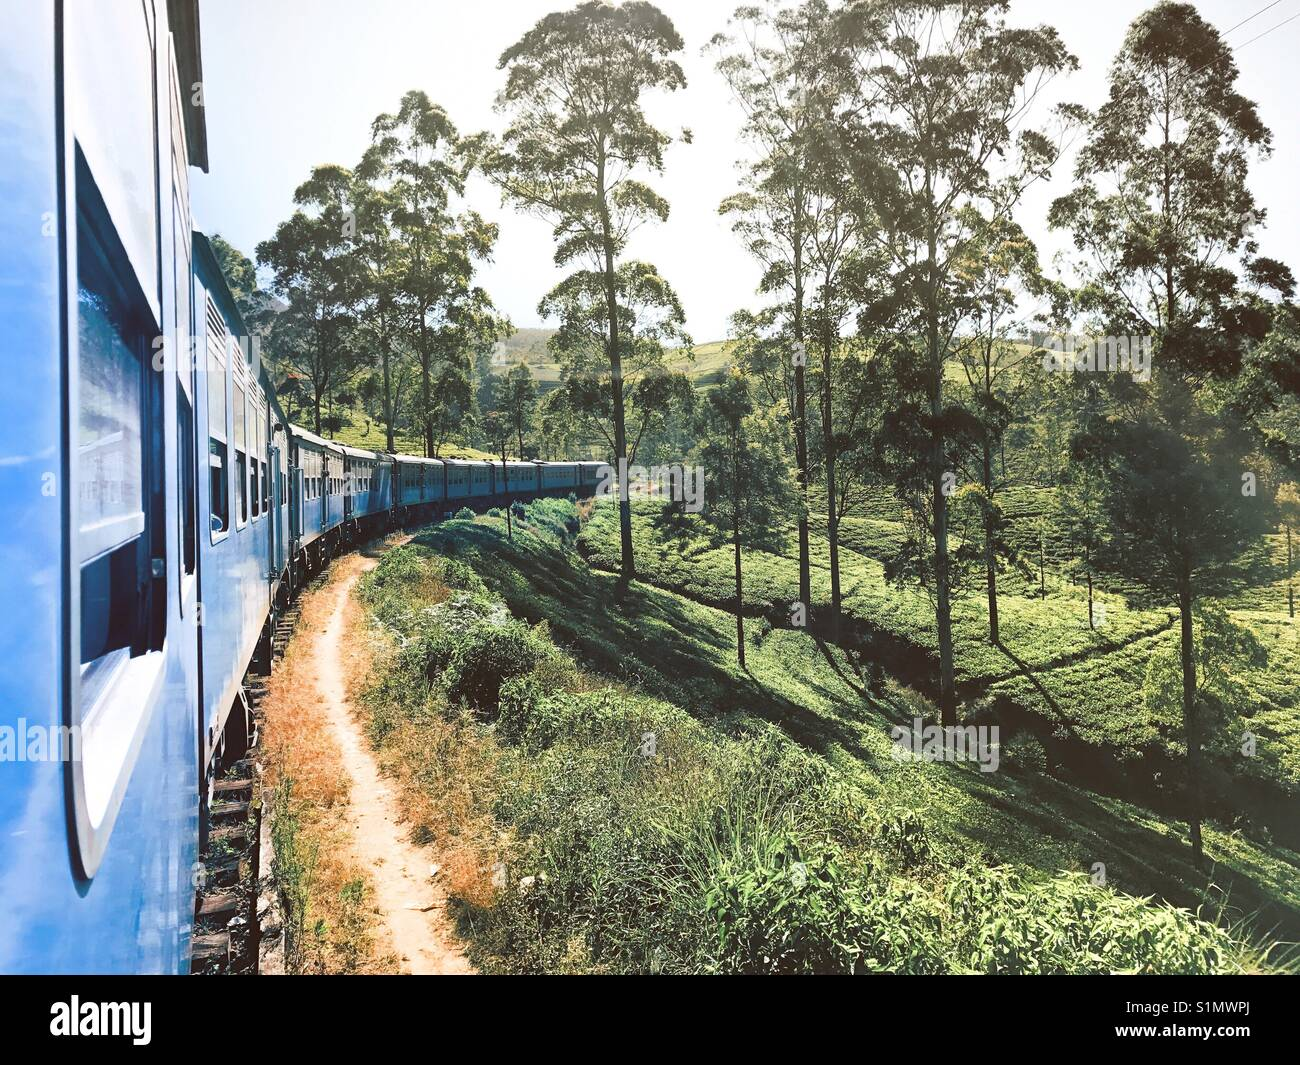 Way to Ella - Srilanka - Stock Image